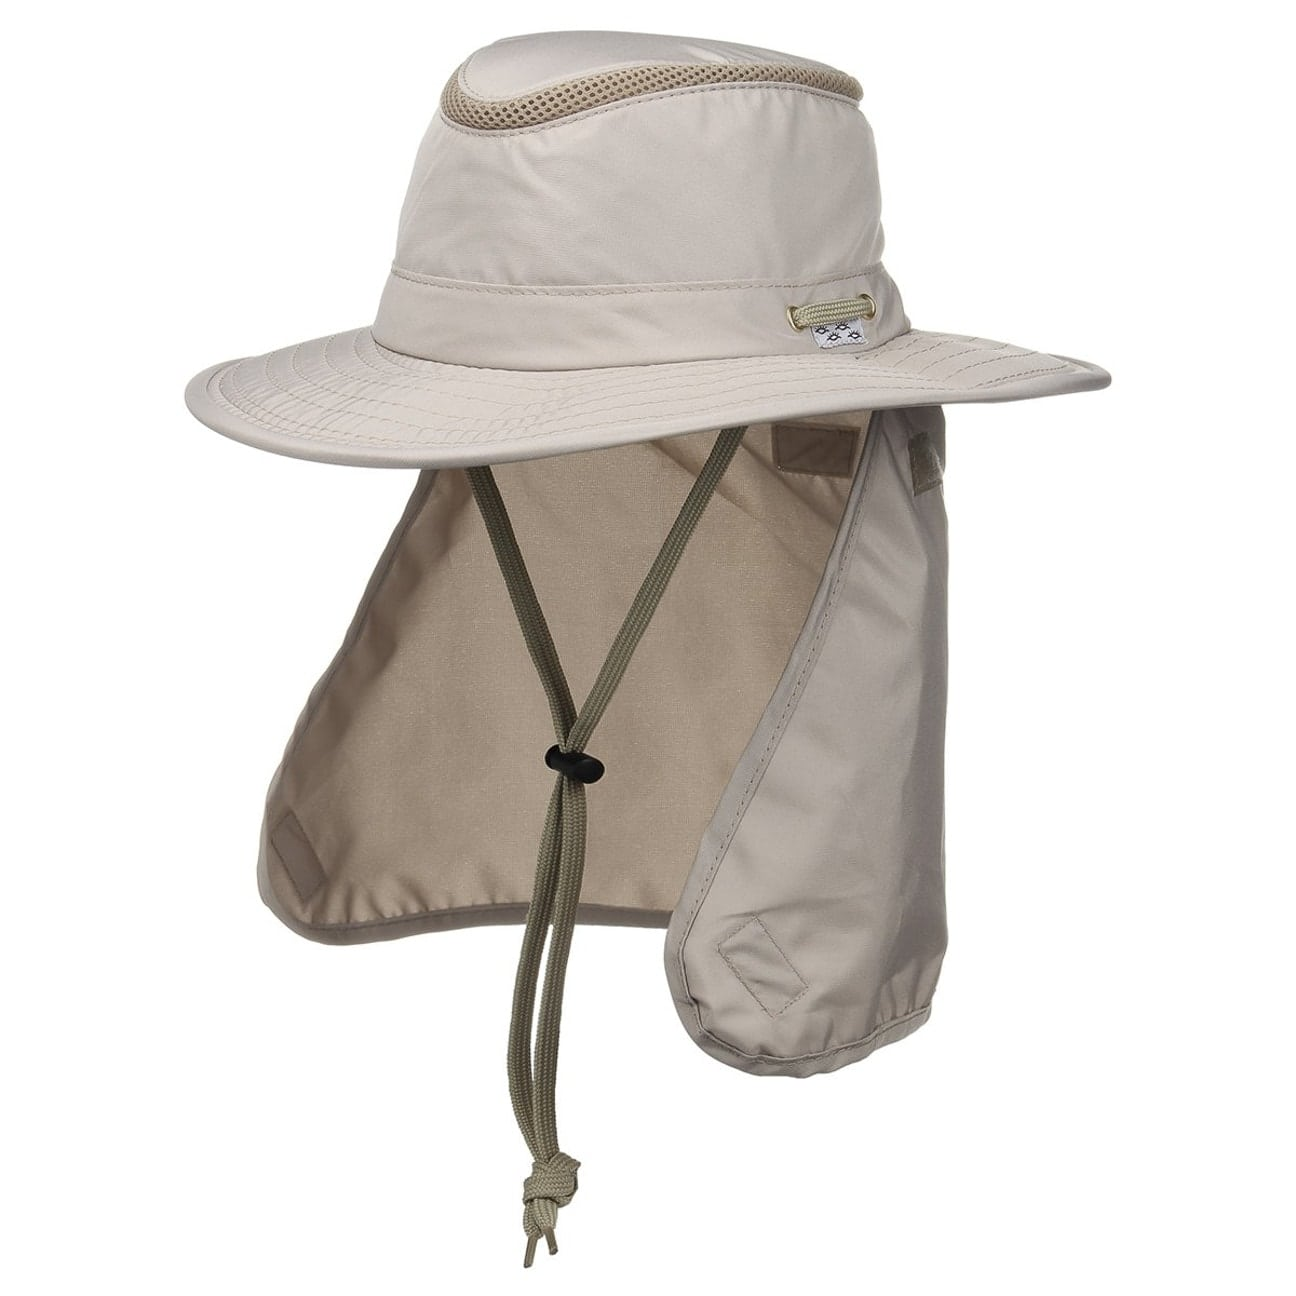 Sombrero Outdoor con Cubrenuca by Conner